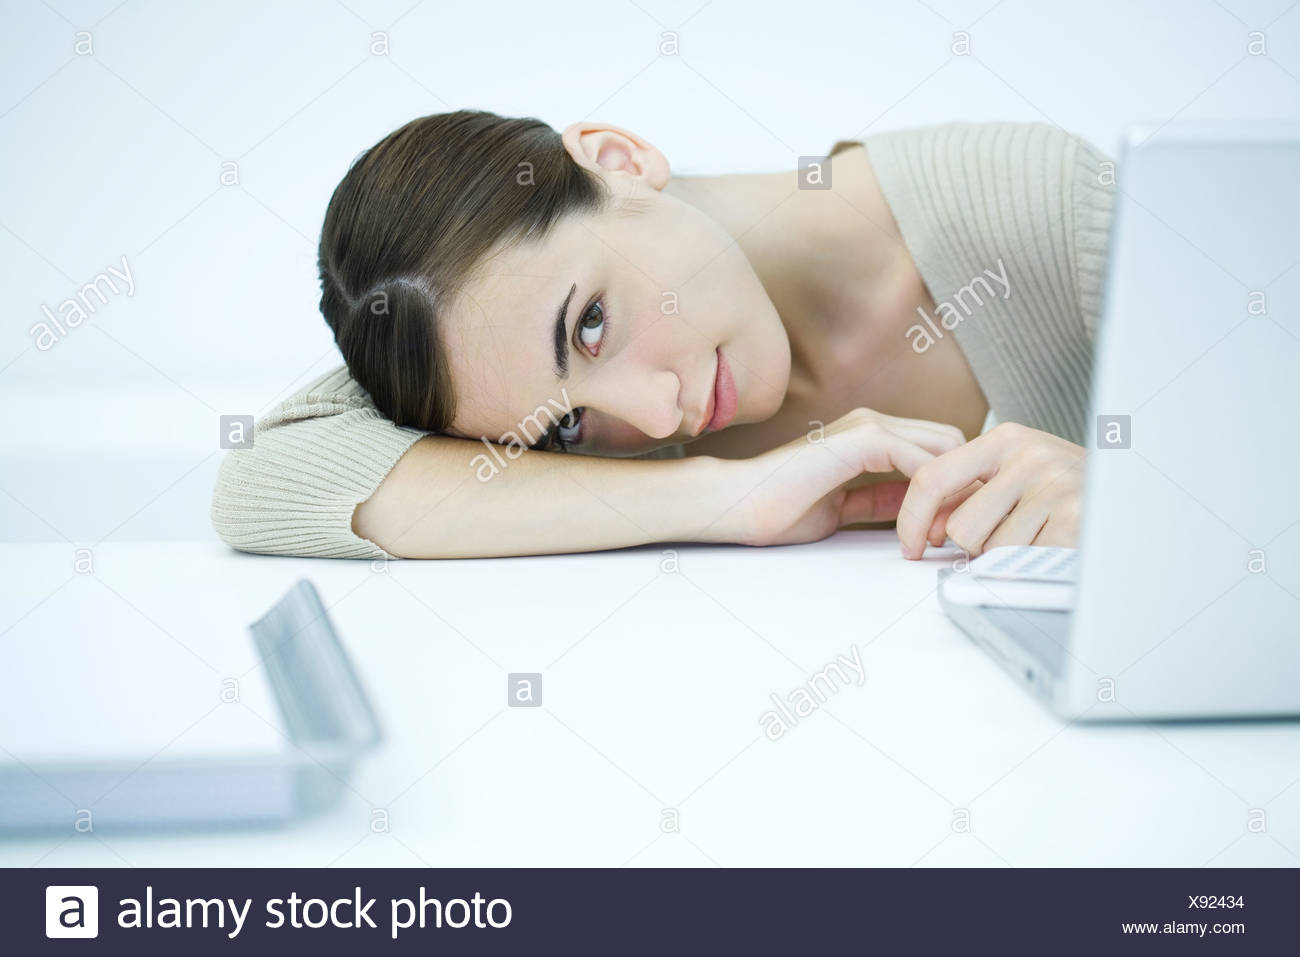 Young woman sitting at desk with head down on arm - Stock Image